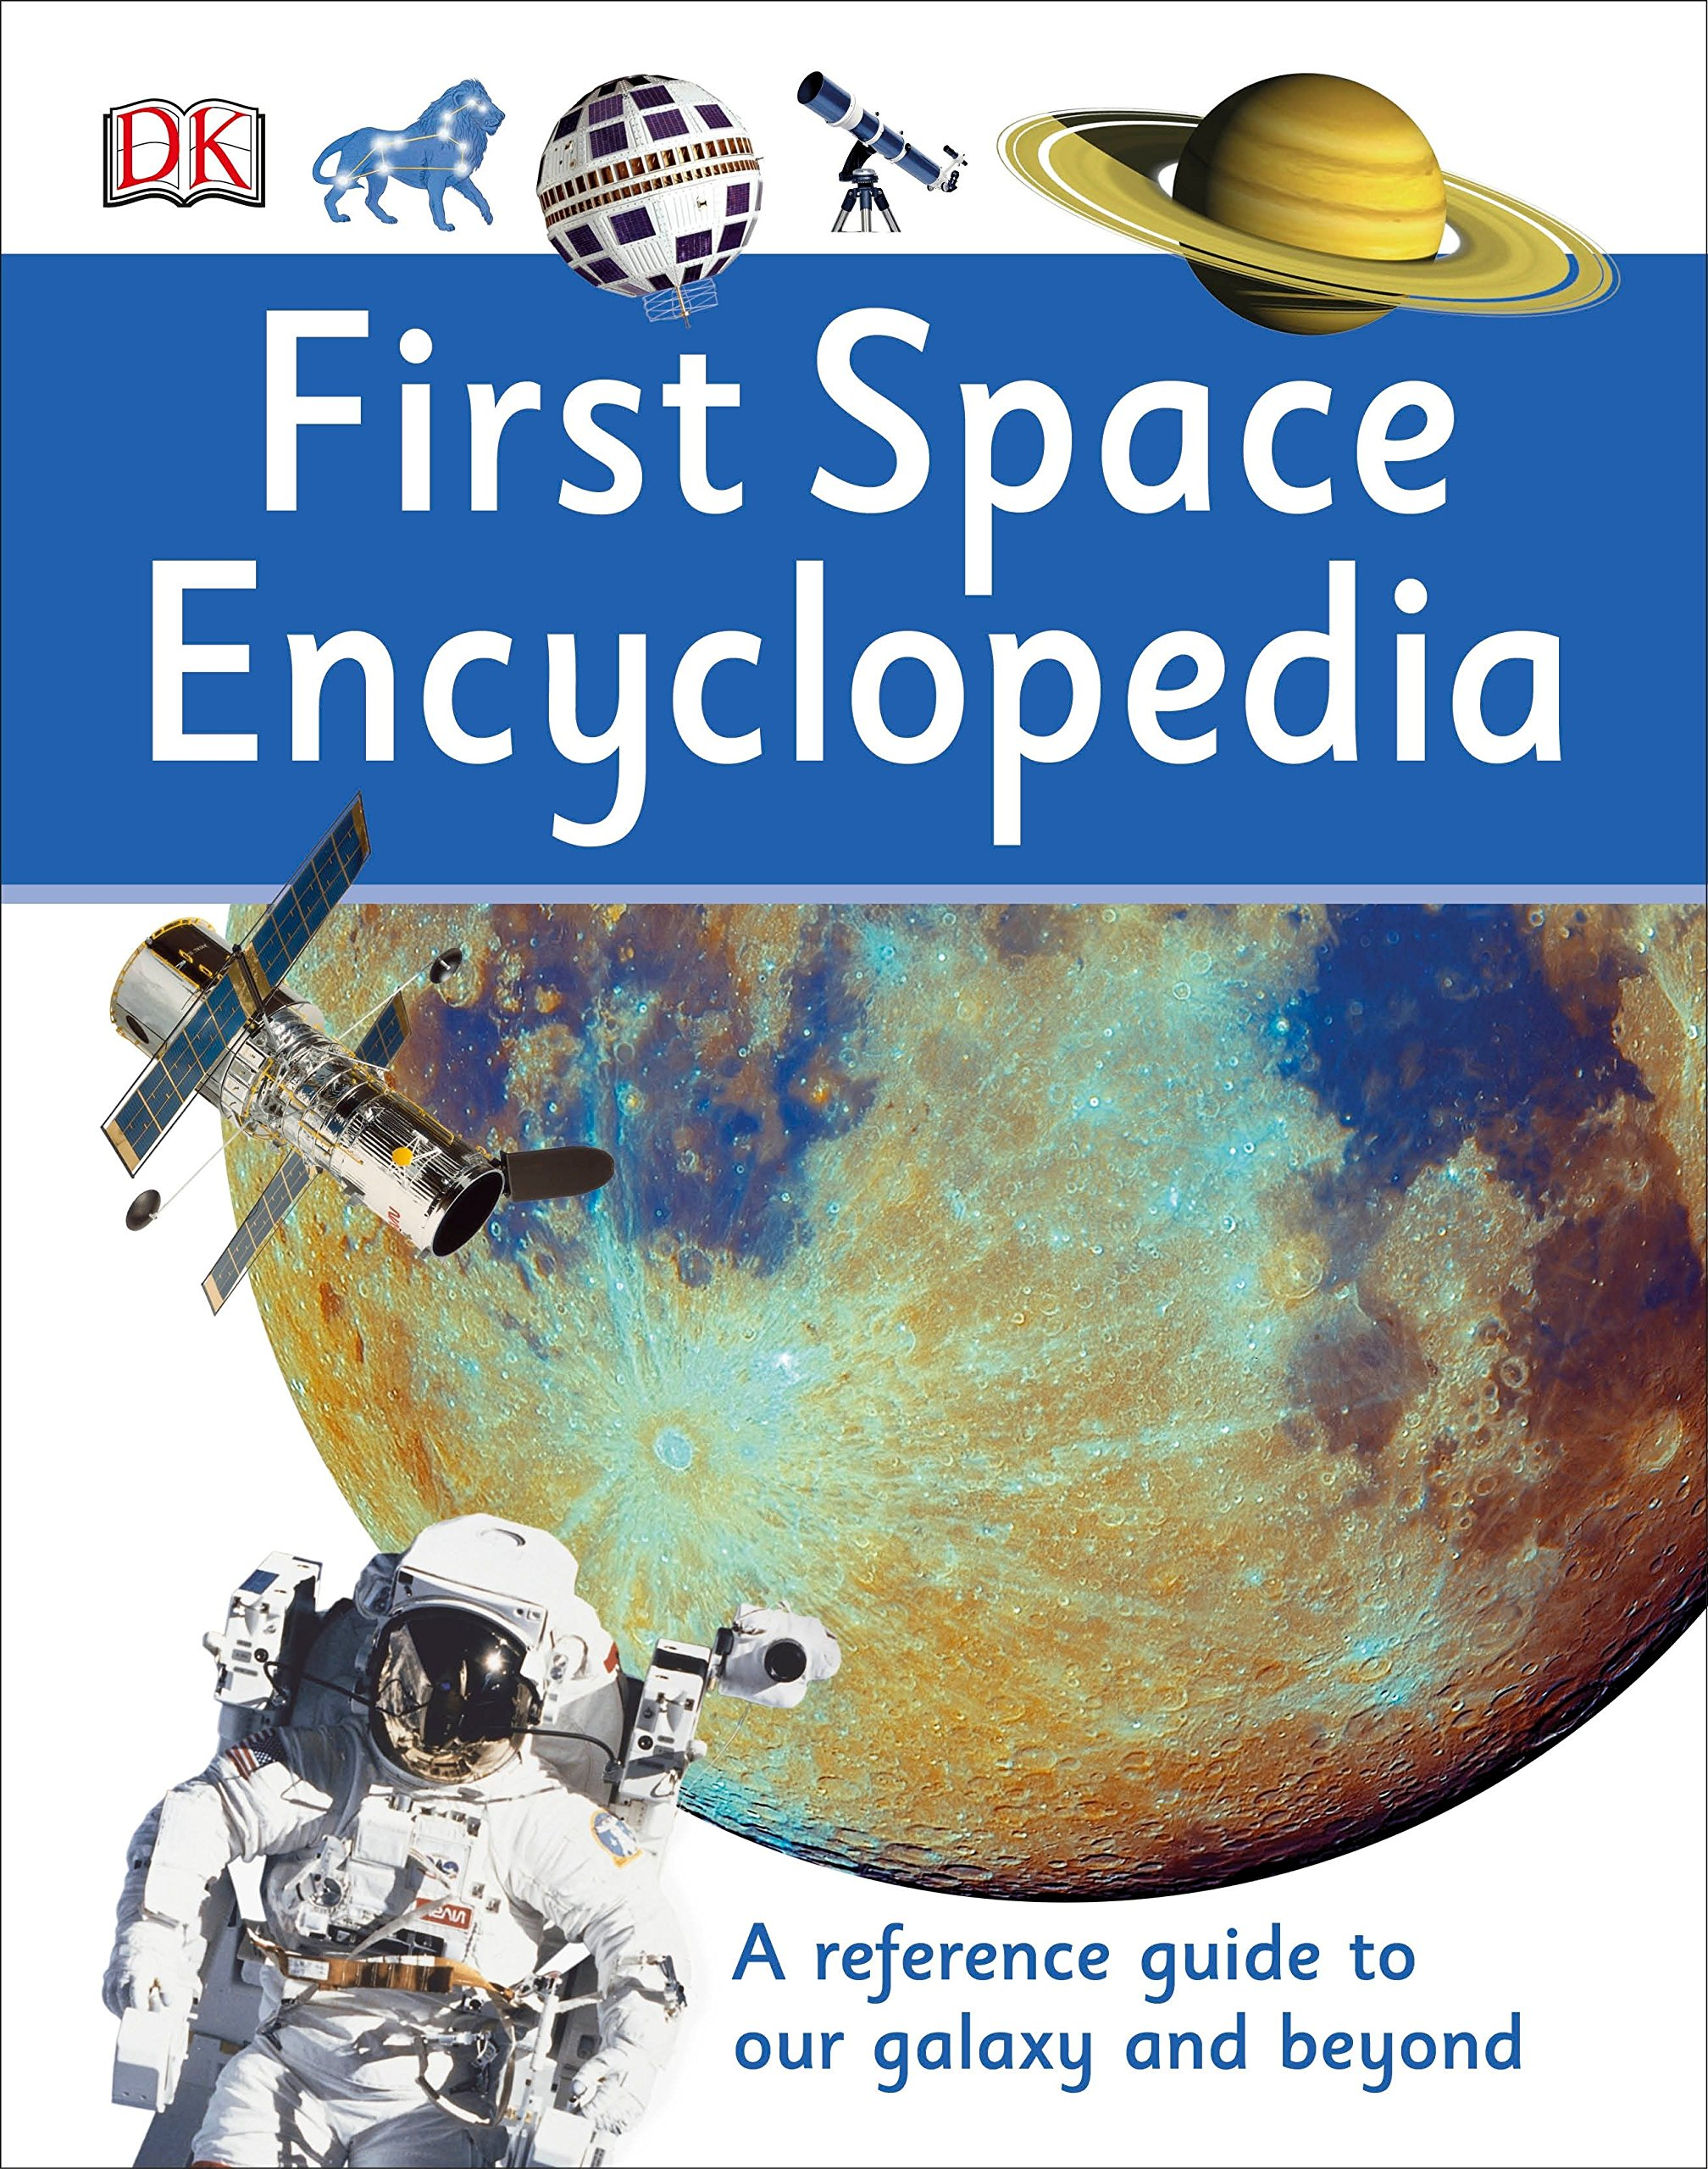 First Space Encyclopedia (DK First Reference) Hardcover – June 14, 2016 DK Children 1465443436 Technology - Aeronautics Astronomy